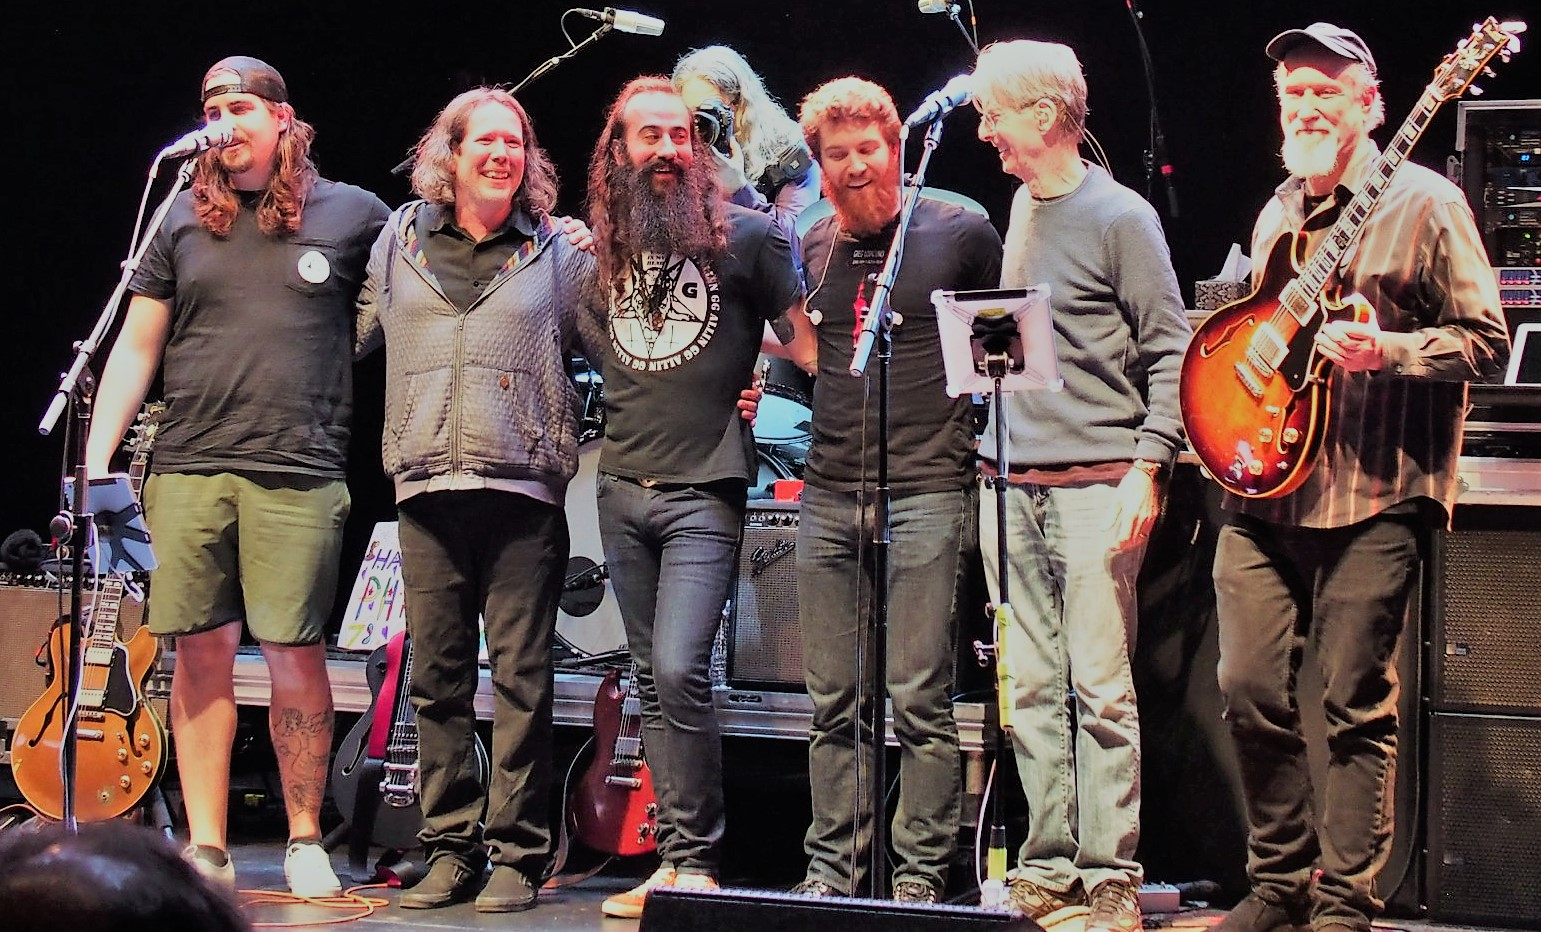 Phil Lesh and the Terrapin Family Band with special guest John Scofield | Port Chester, New York | March 15th, 2018